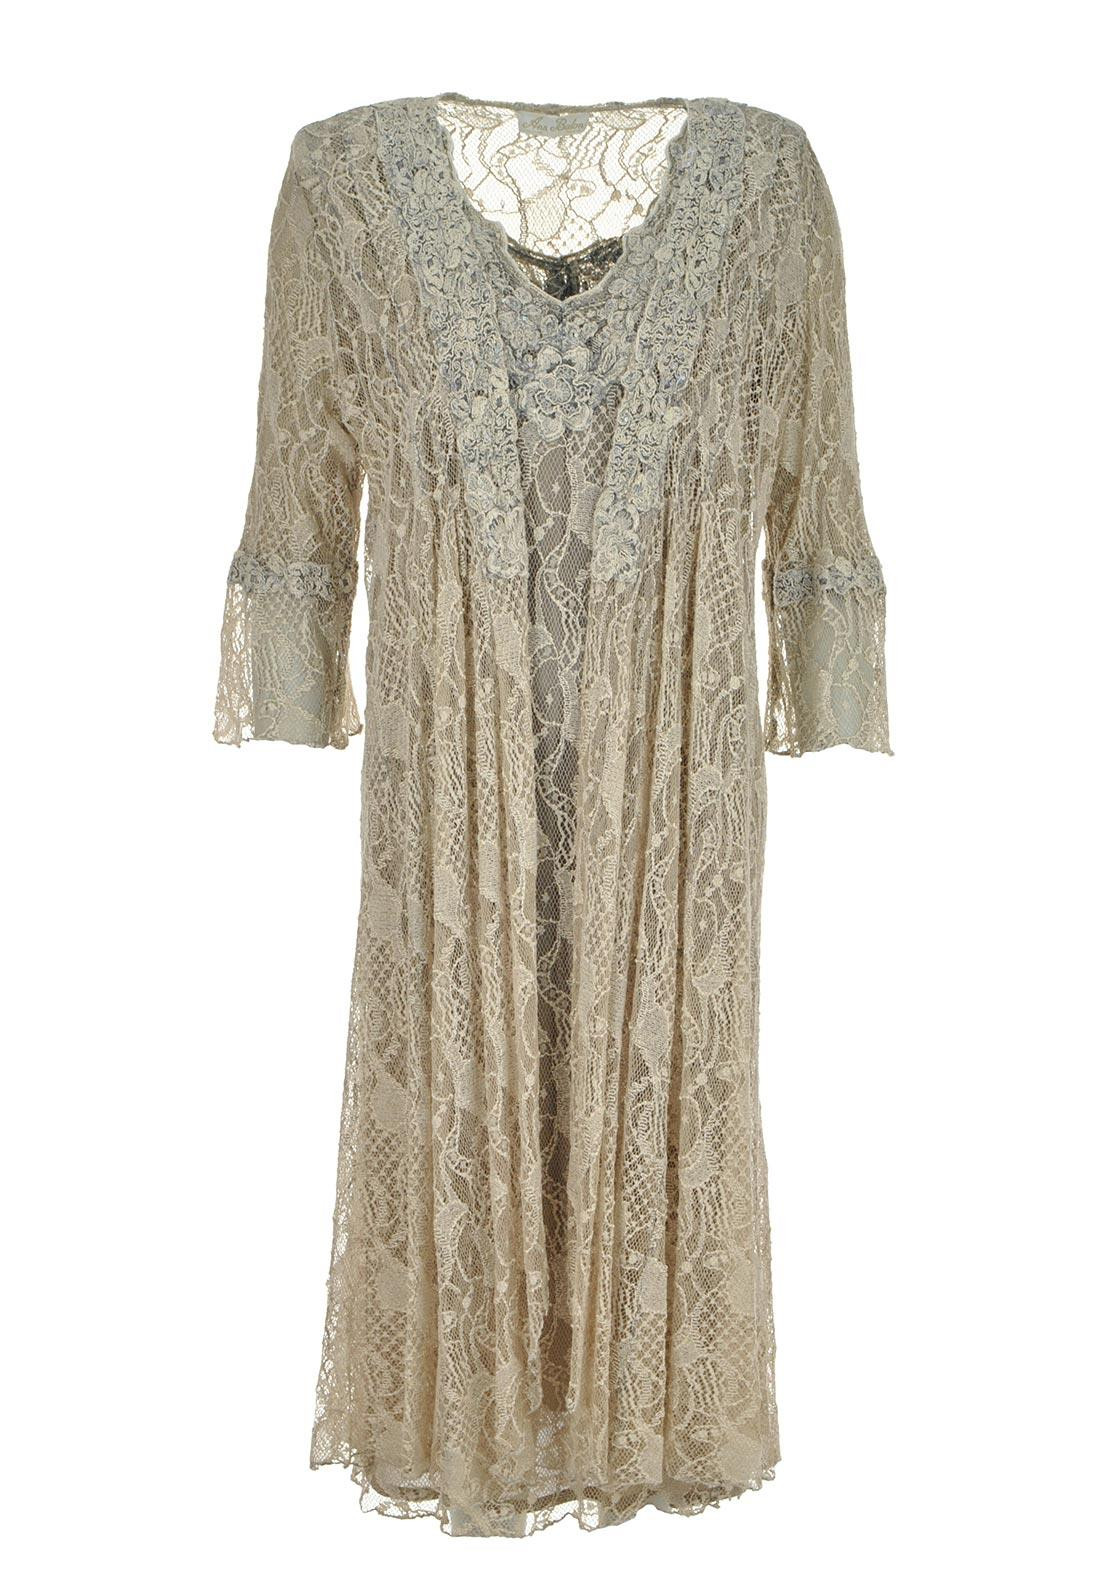 Ann Balon Giordana Lace Dress And Coat Two Piece Outfit Cappuccino - Large